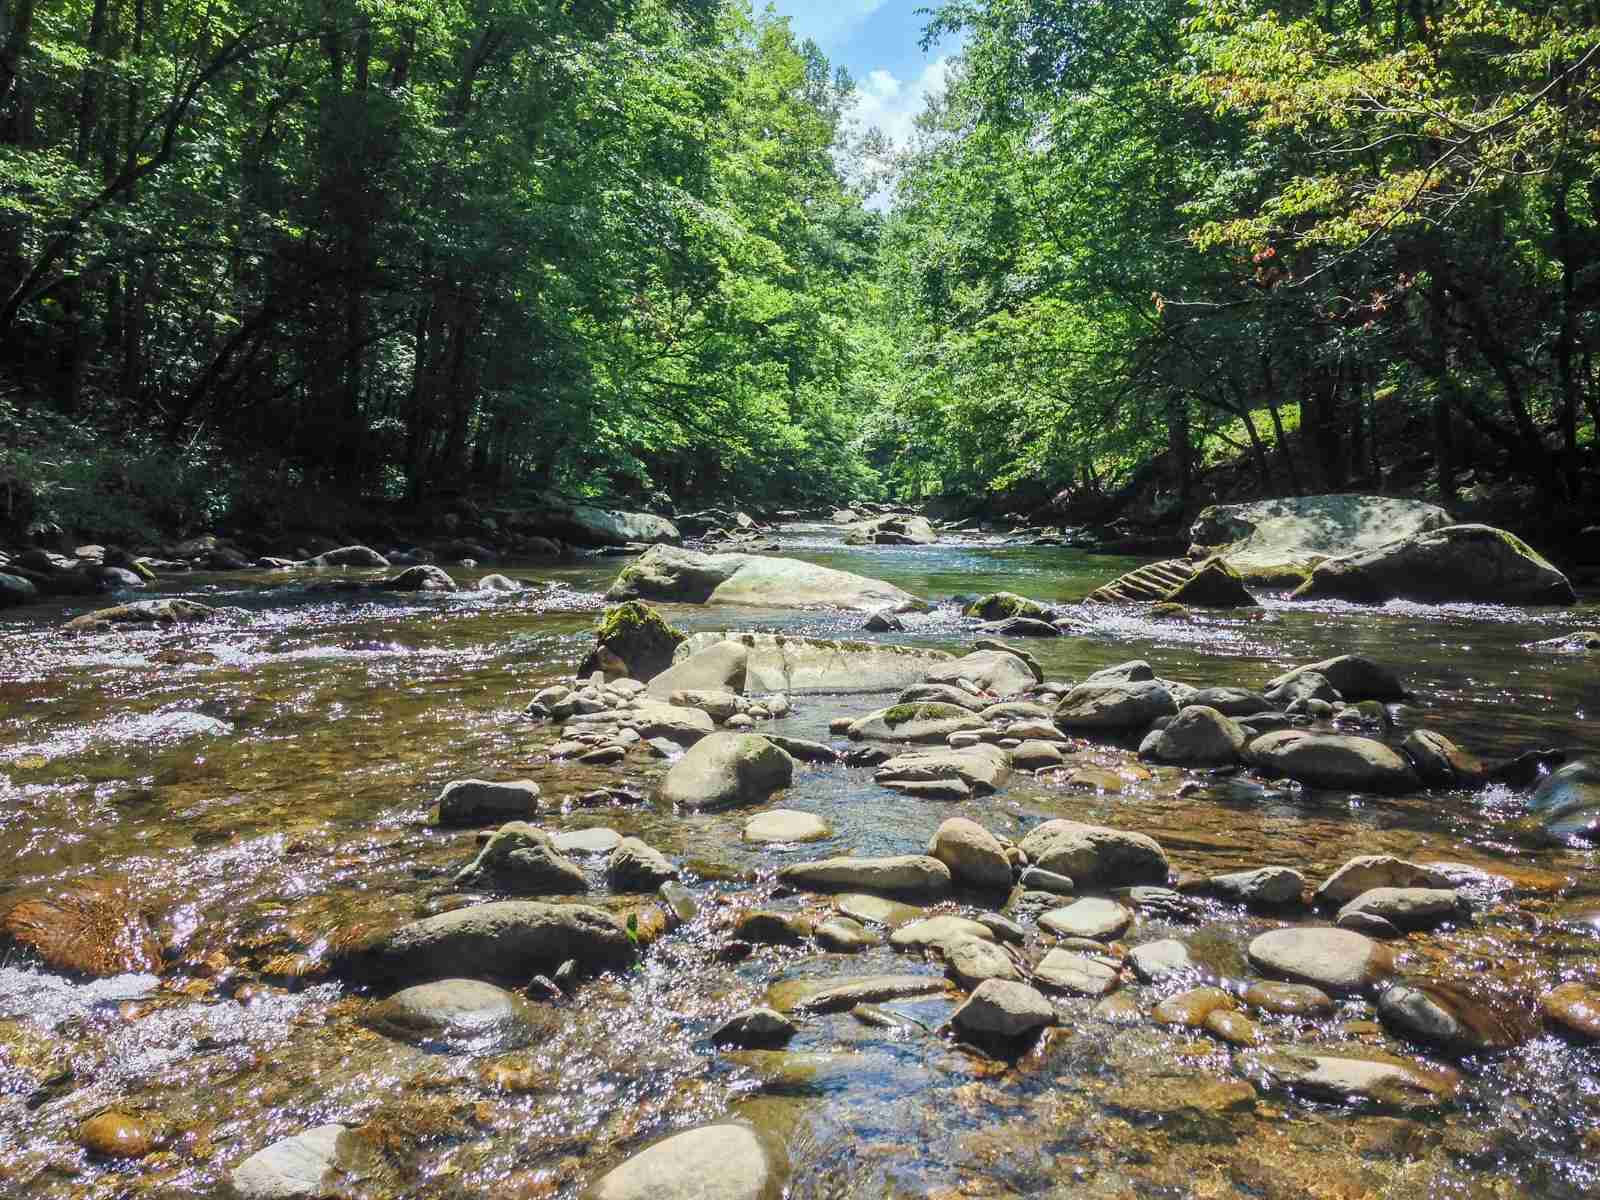 Little Pigeon River (Photo by Caitlin Riddell/The Points Guy)